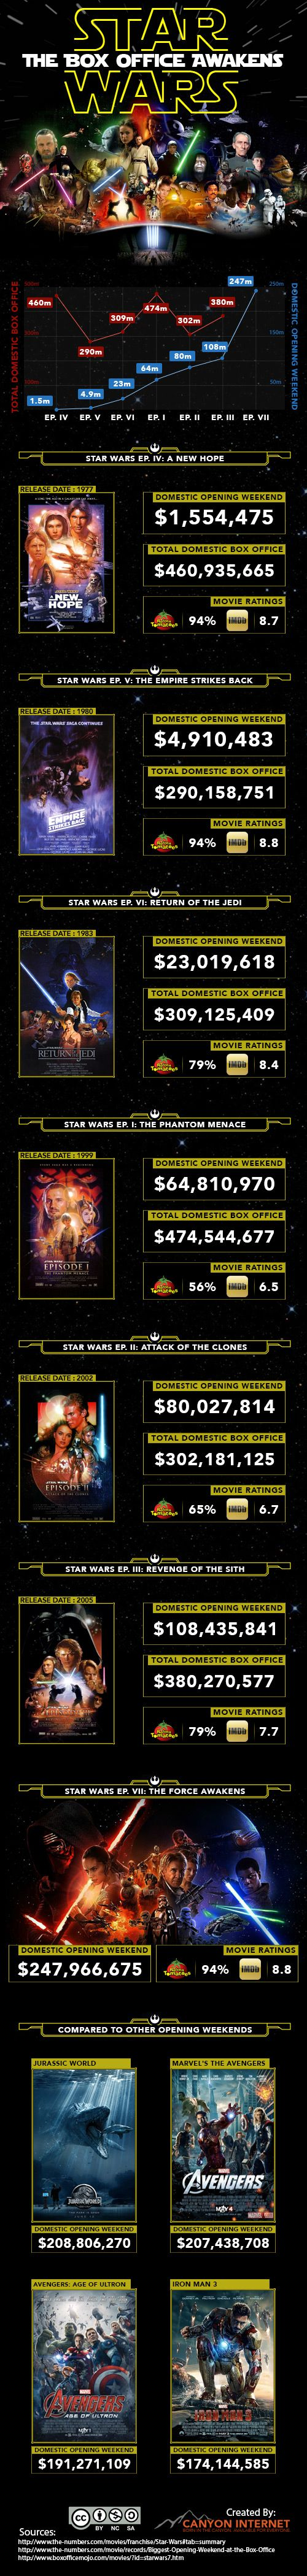 Star Wars Opening Weekend #infographic #Entertainment #StarWars